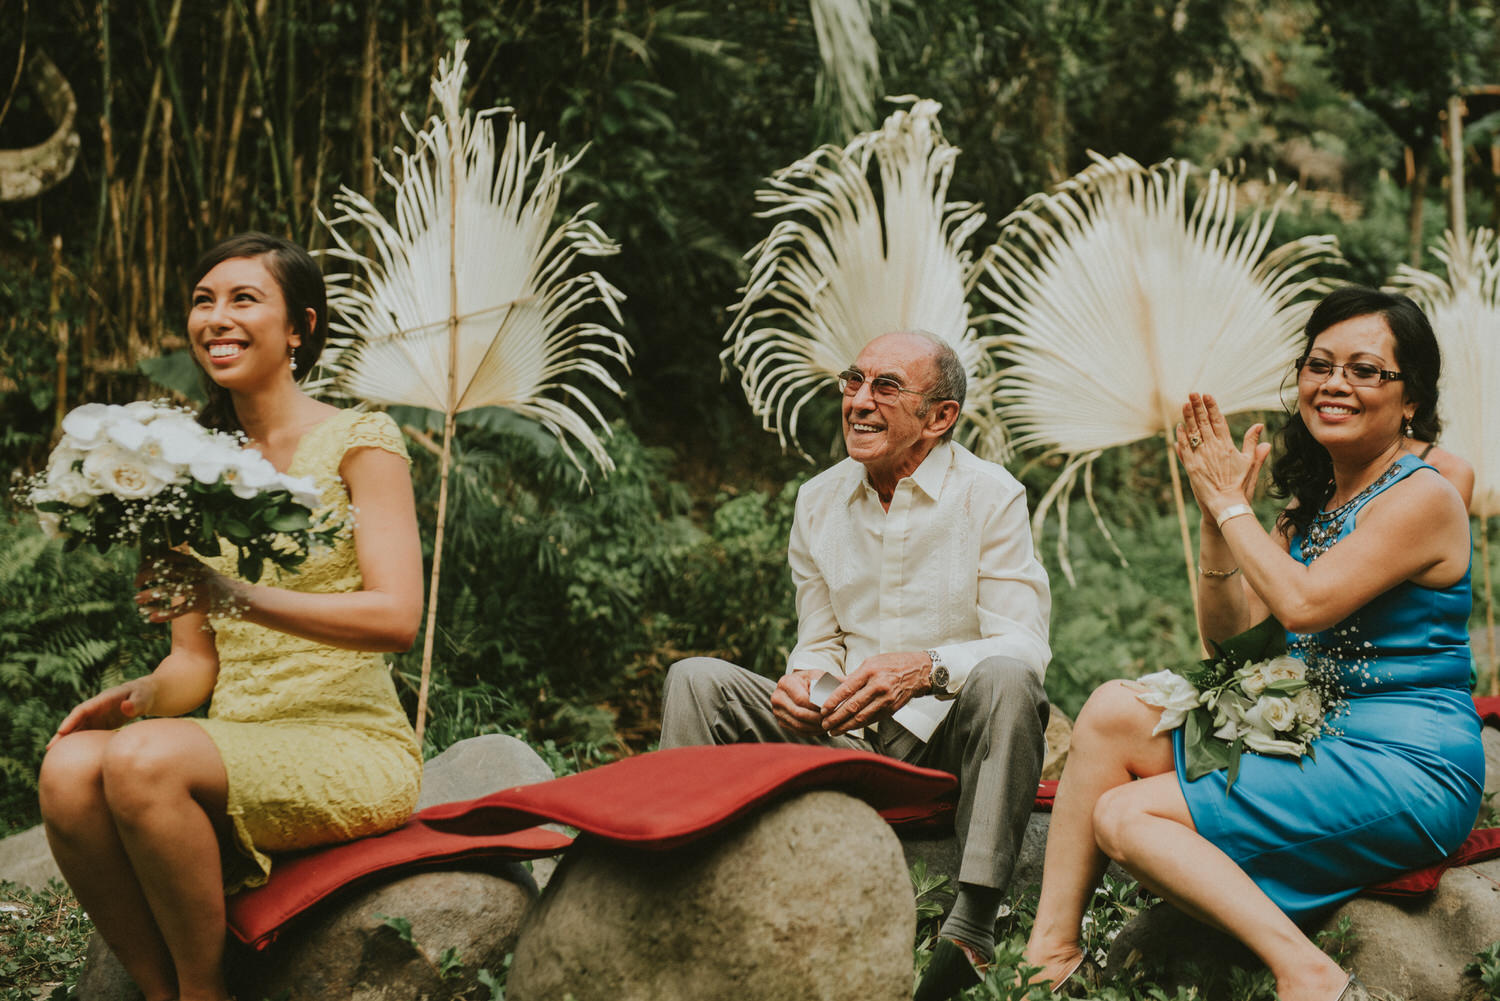 bali-wedding-ubud-wedding-wedding-destination-diktatphotography-kadek-artayasa-elaine-and-glenn-081